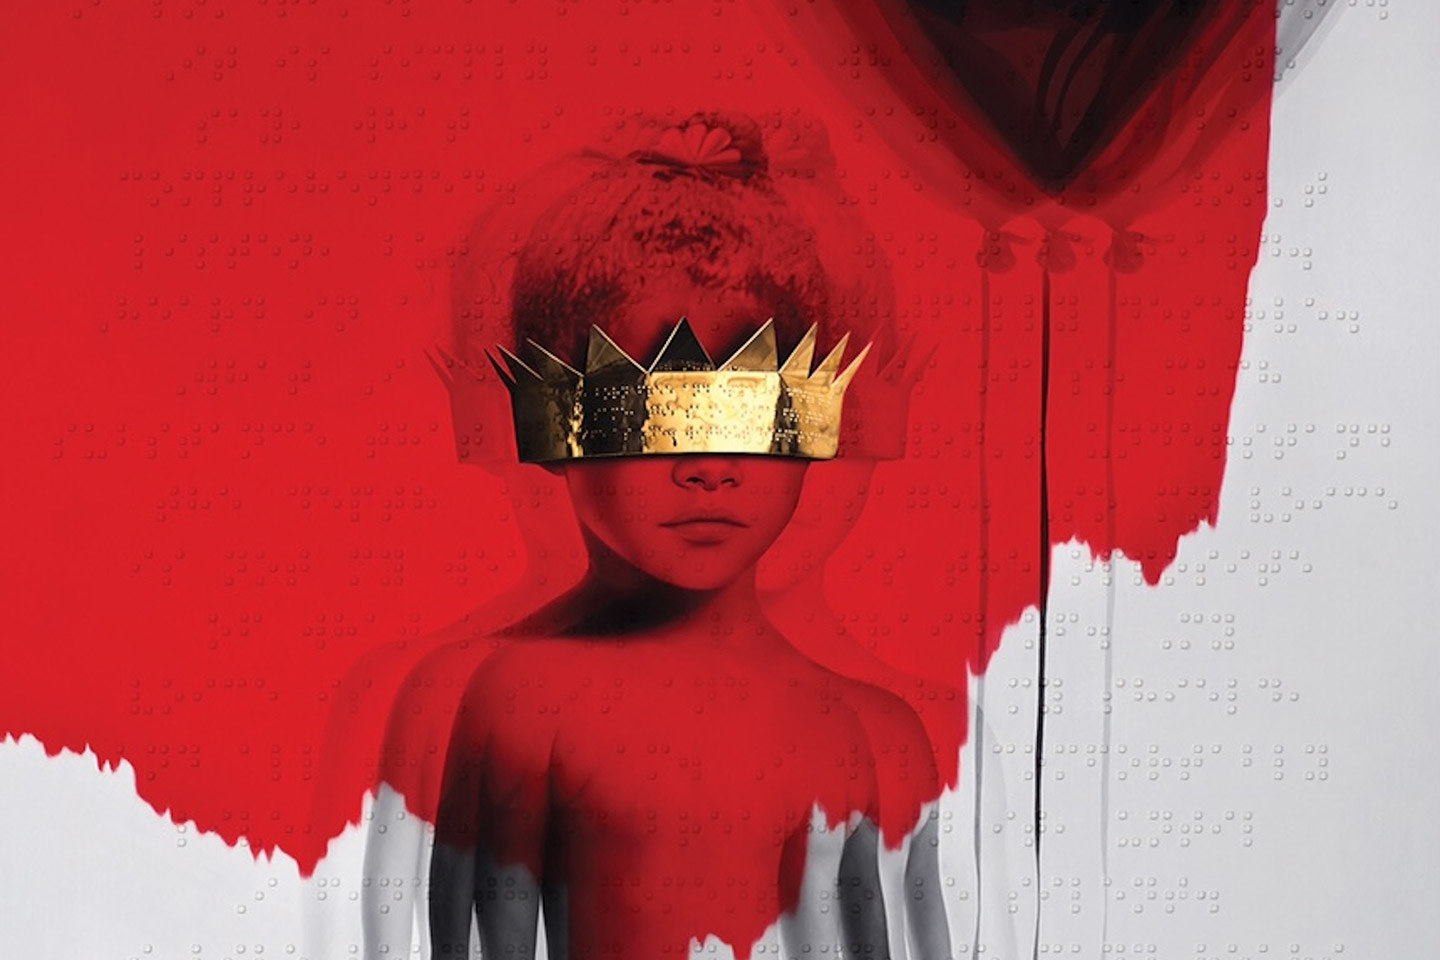 Part of the album artwork for Rihanna's new album, Anti, which is available now on Tidal.